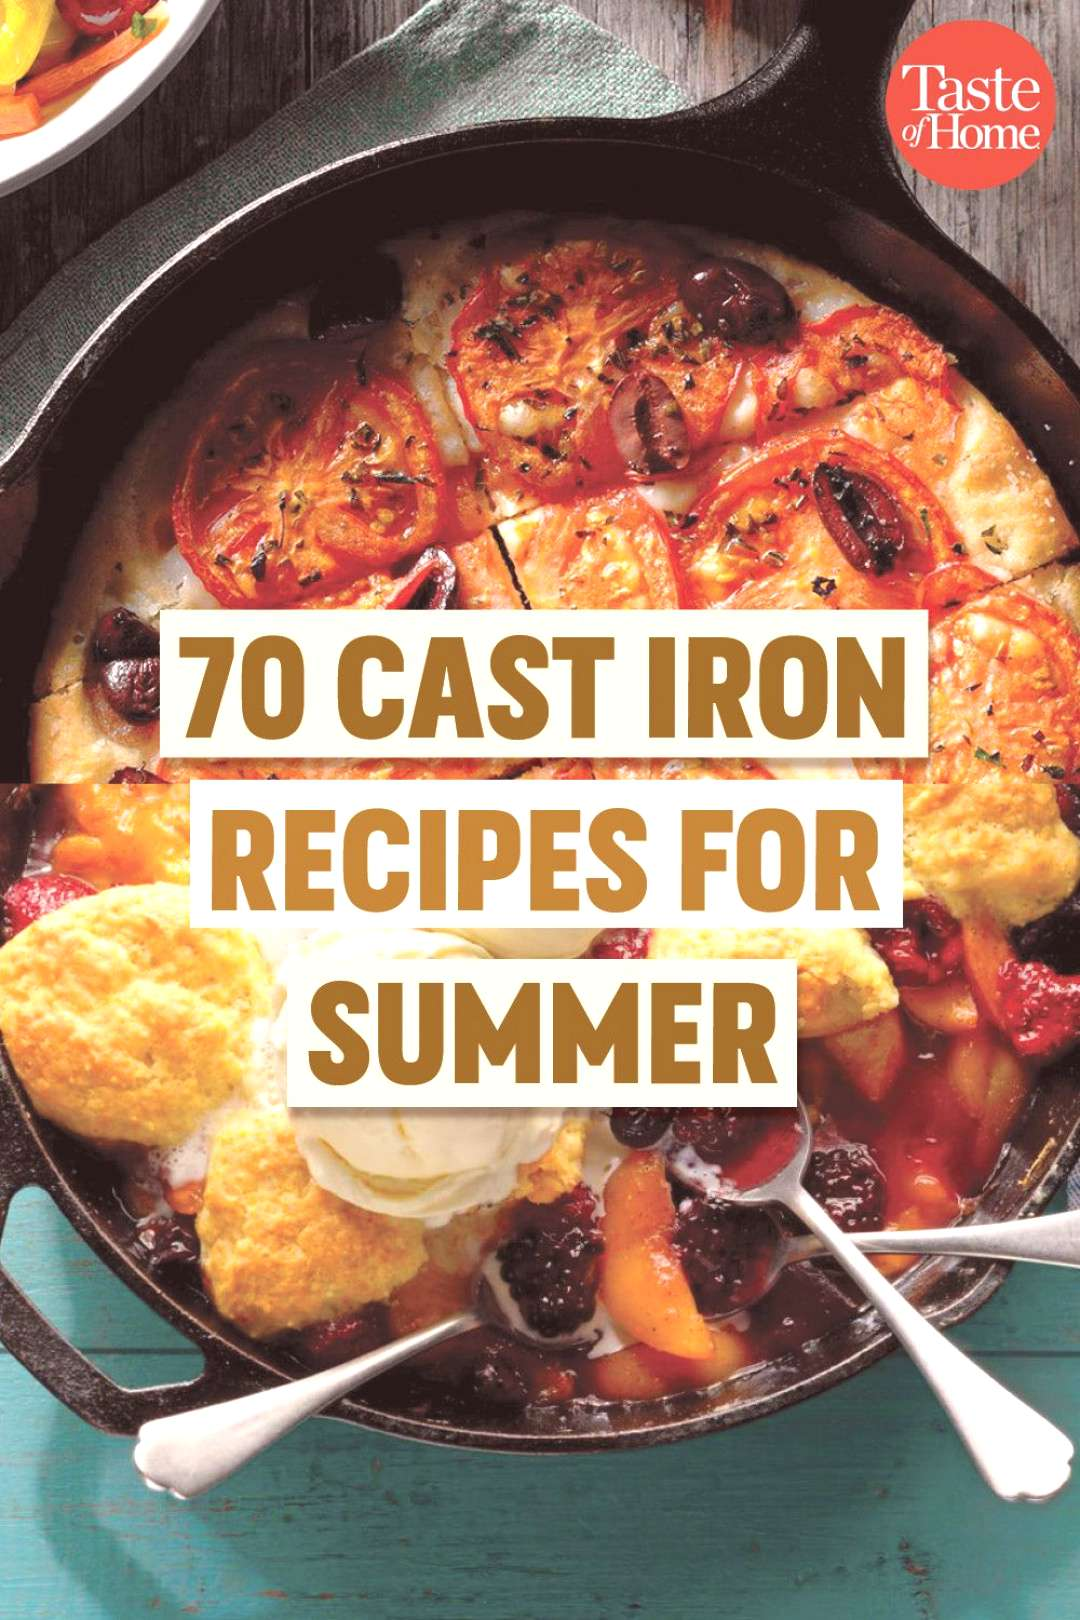 Cast Iron Recipes You Need to Make This Summer 70 Cast Iron Recipes for Summer